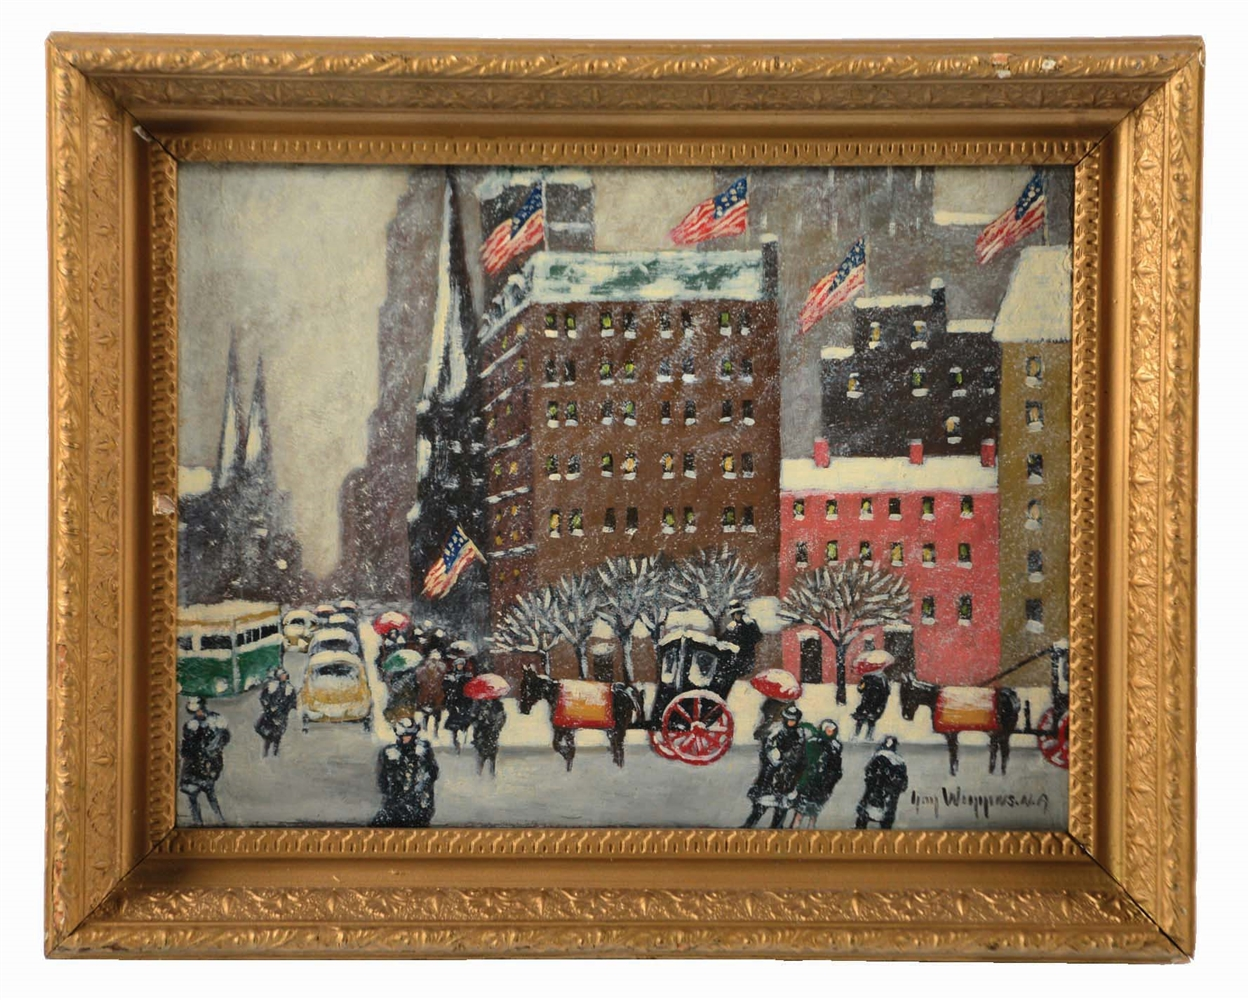 GUY CARLTON WIGGINS (AMERICAN 1883 - 1962) AT THE PLAZA.